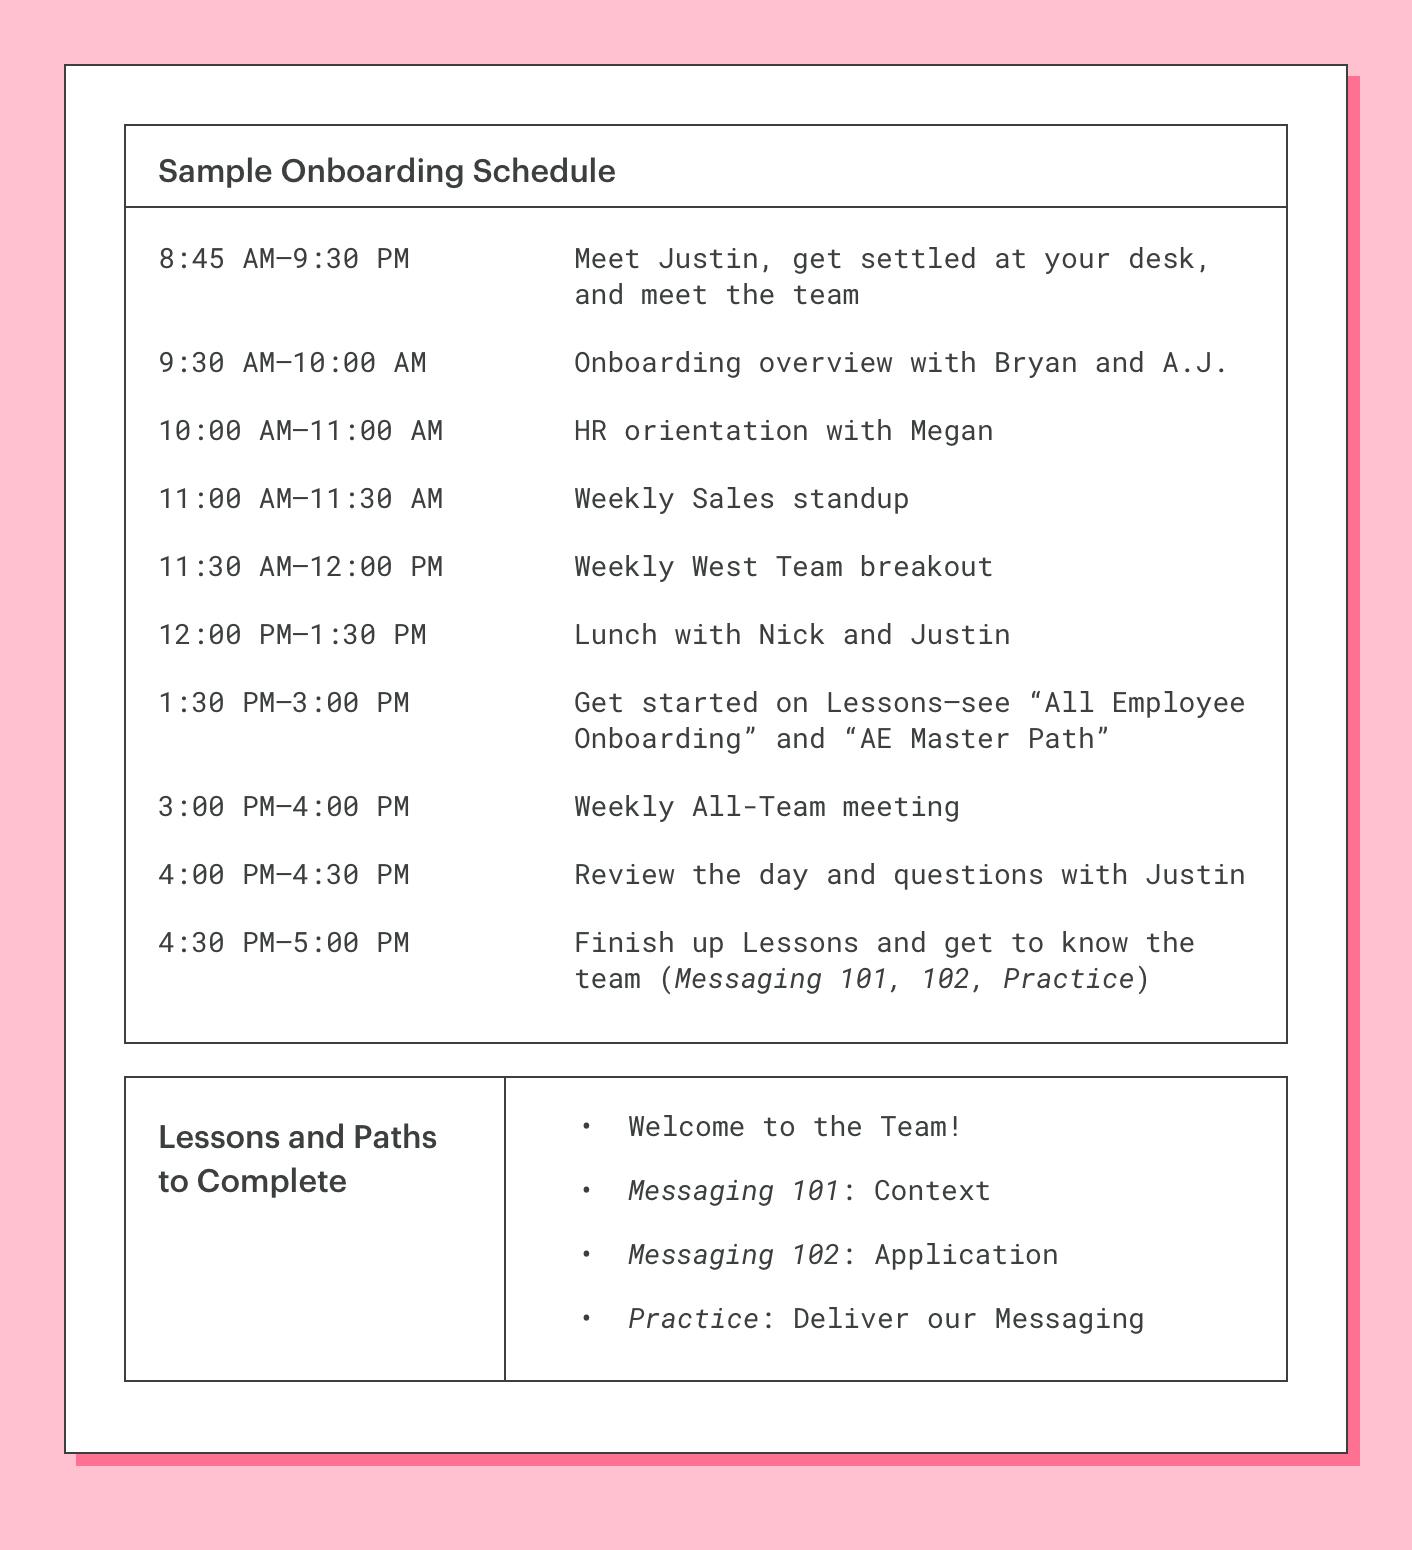 lessonly's sales onboarding schedule